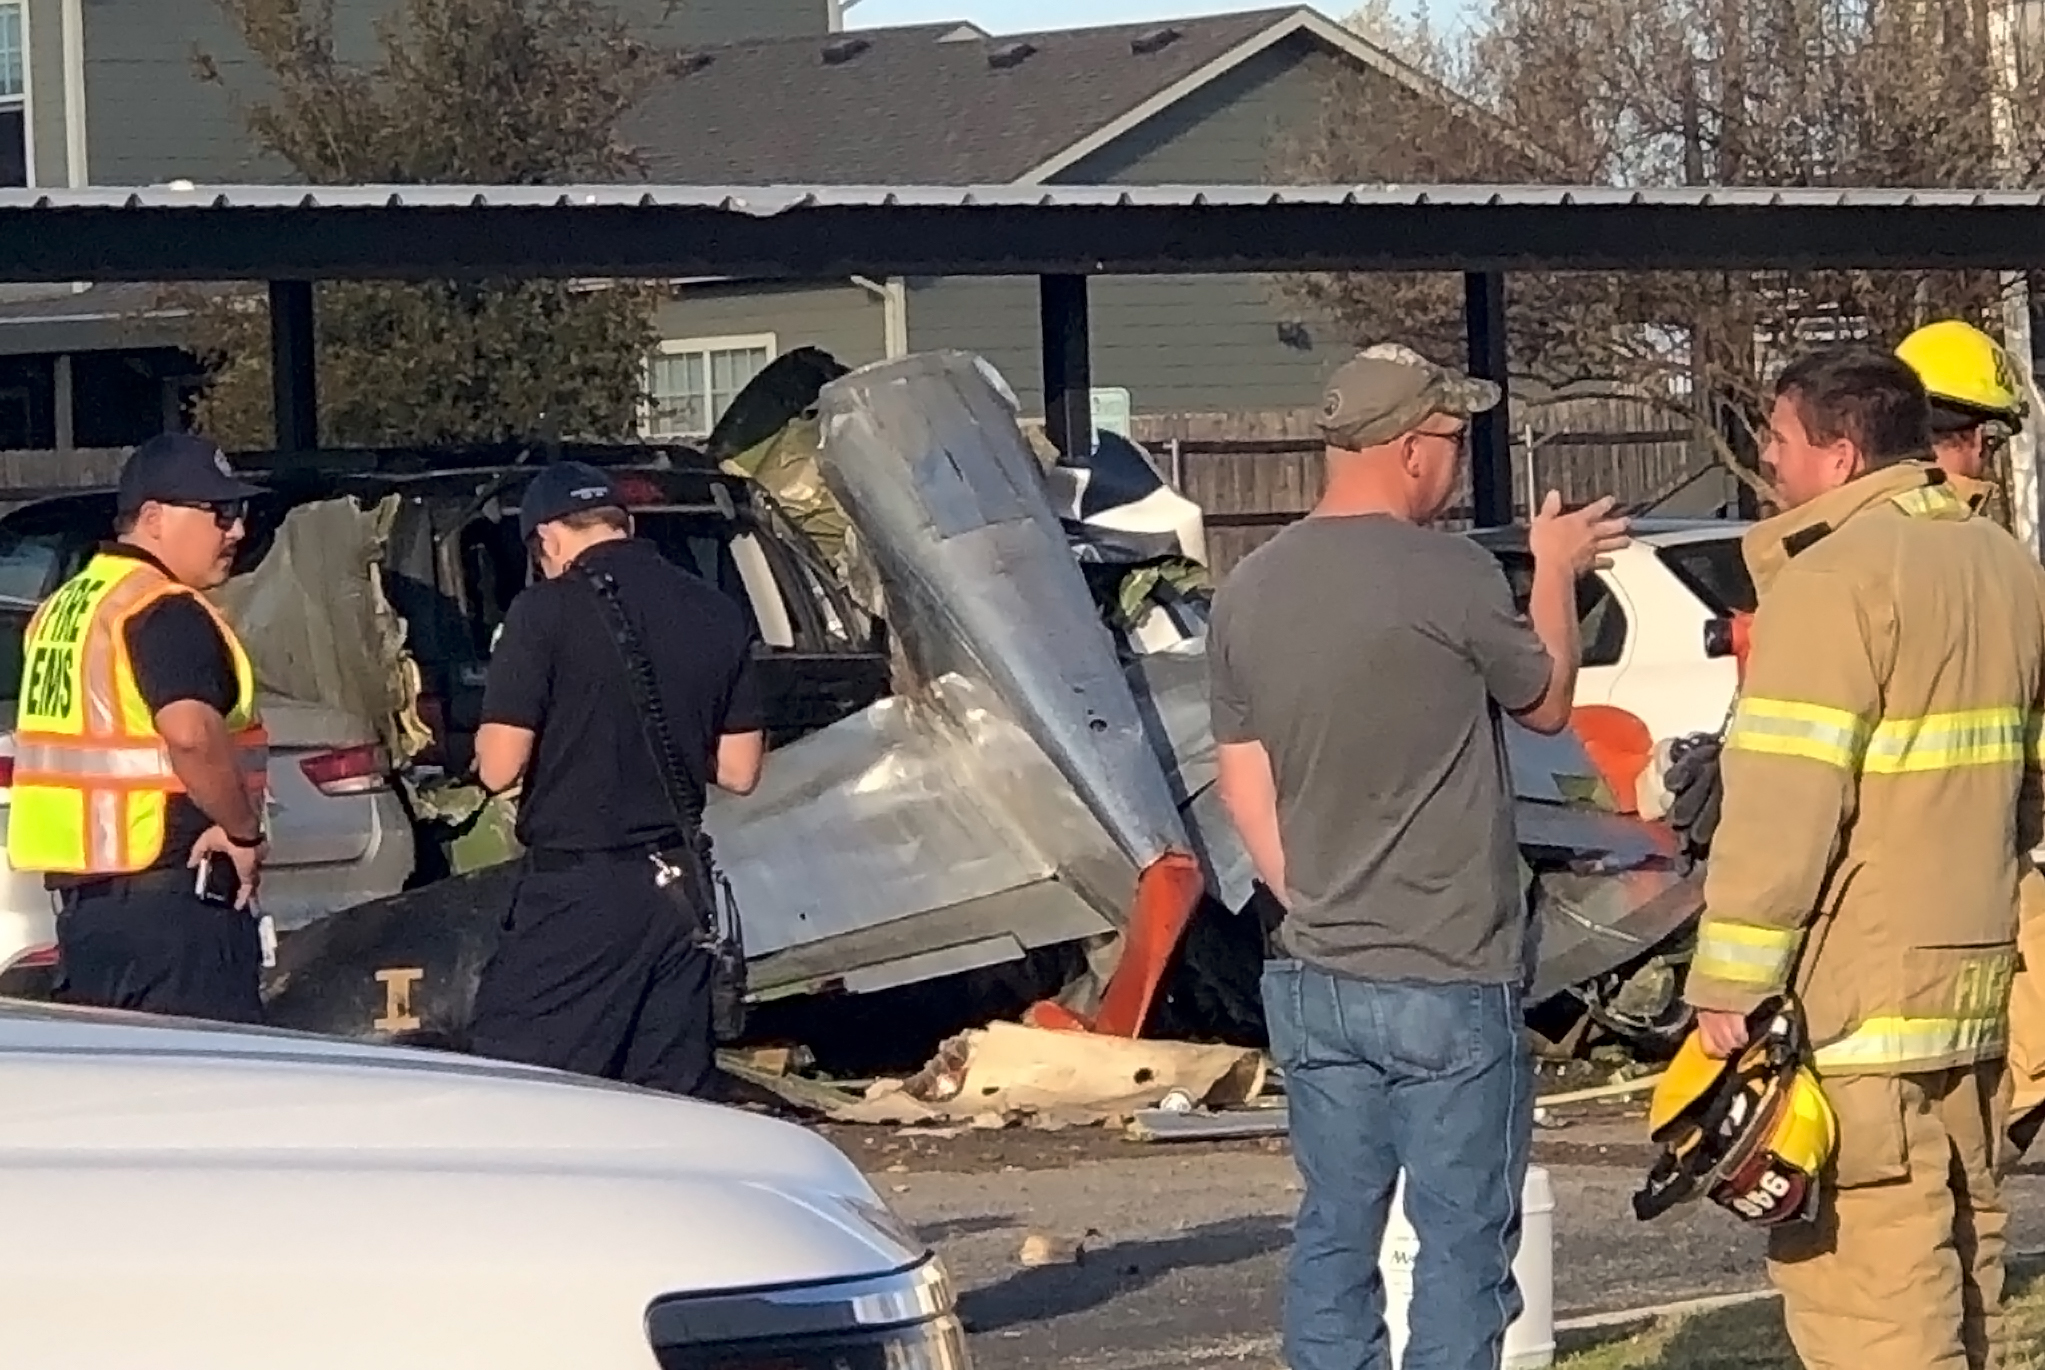 Vintage World War II plane crashes into an apartment parking lot killing 2 in Fredericksburg